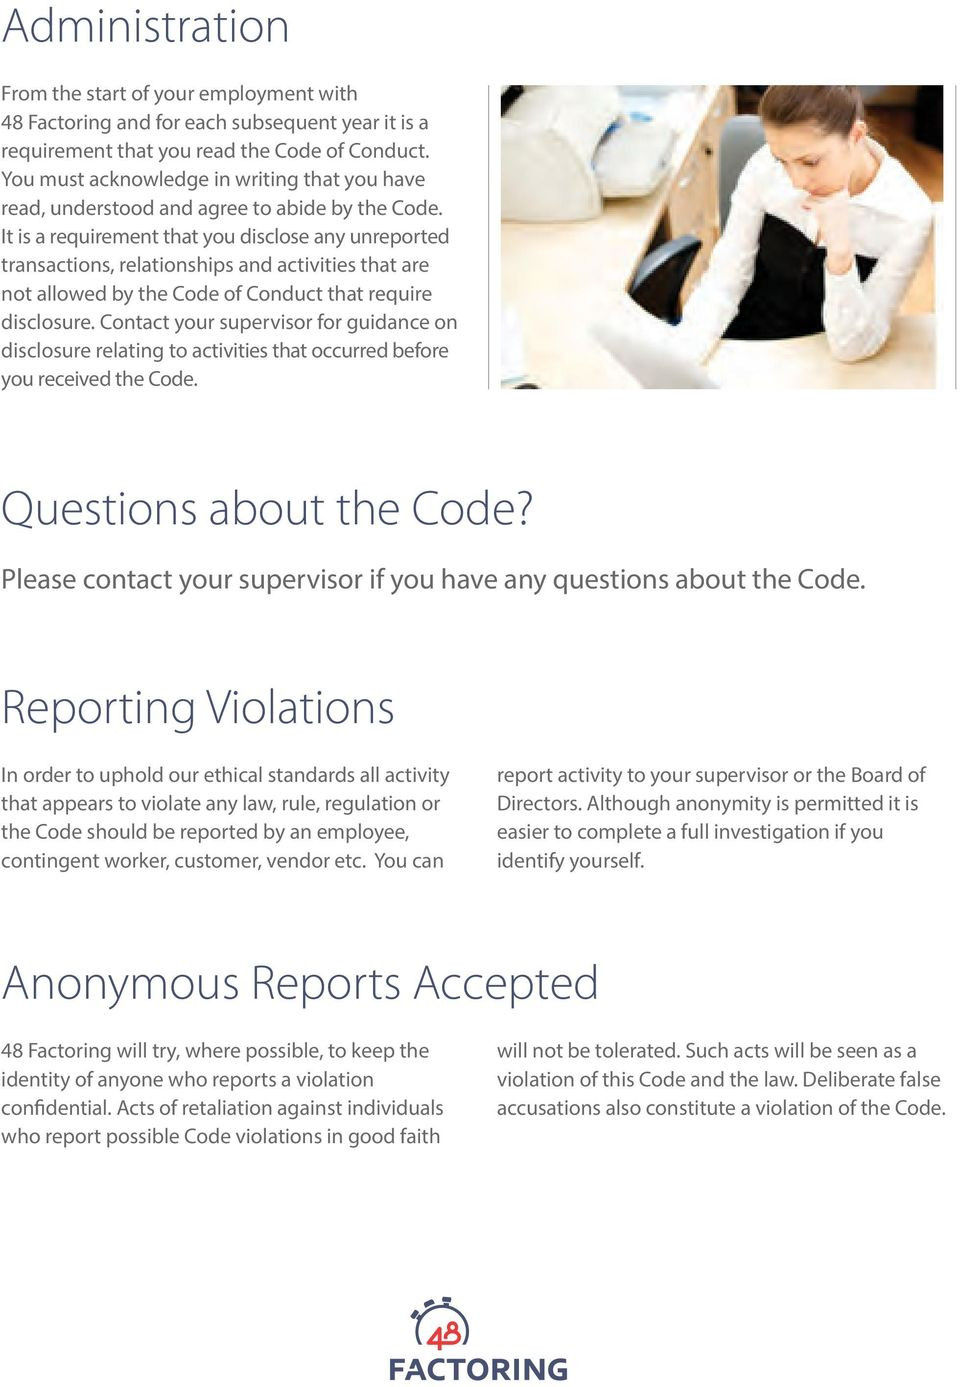 It is a requirement that you disclose any unreported transactions, relationships and activities that are not allowed by the Code of Conduct that require disclosure.